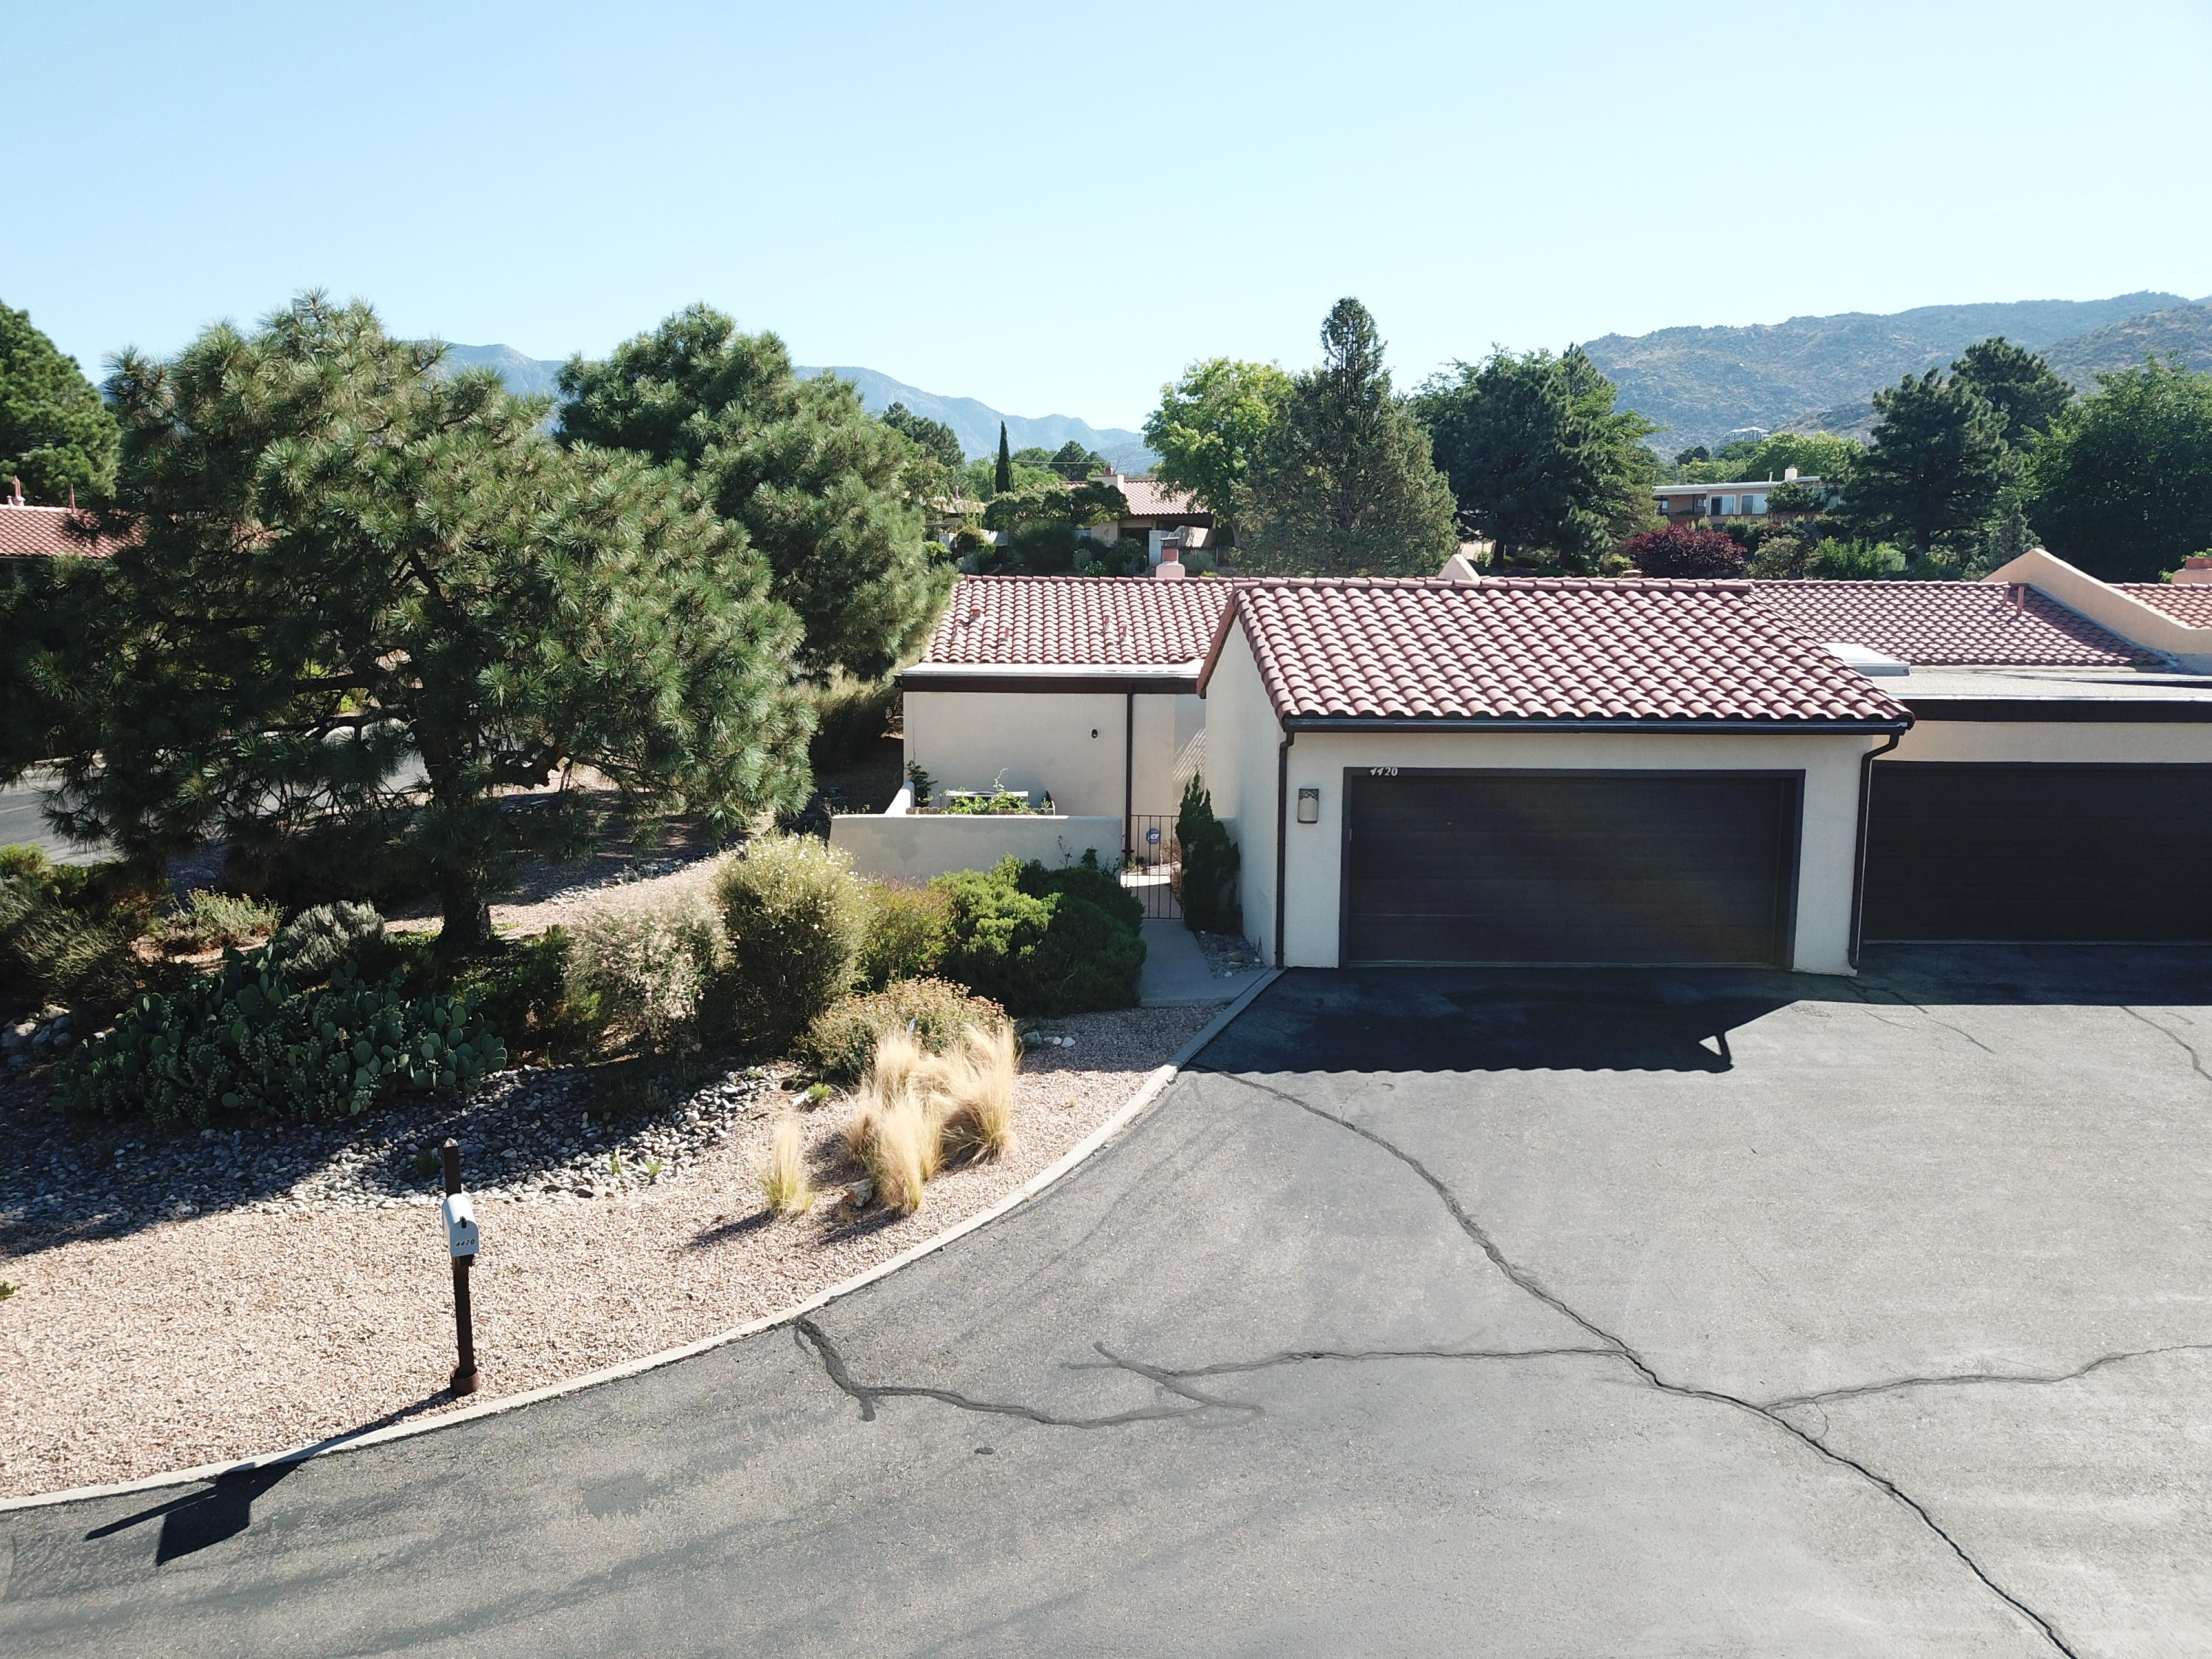 Come see this great home located in the foothills. View of the Sandias from your back patio. Kitchen is complete with granite counters. Two living rooms with custom two way fireplace. 2 or 3 bedroom(one is currently being used as an office. Refrigerated A/C, large bedrooms and a two car garage. HOA covers water, sewer, garbage.